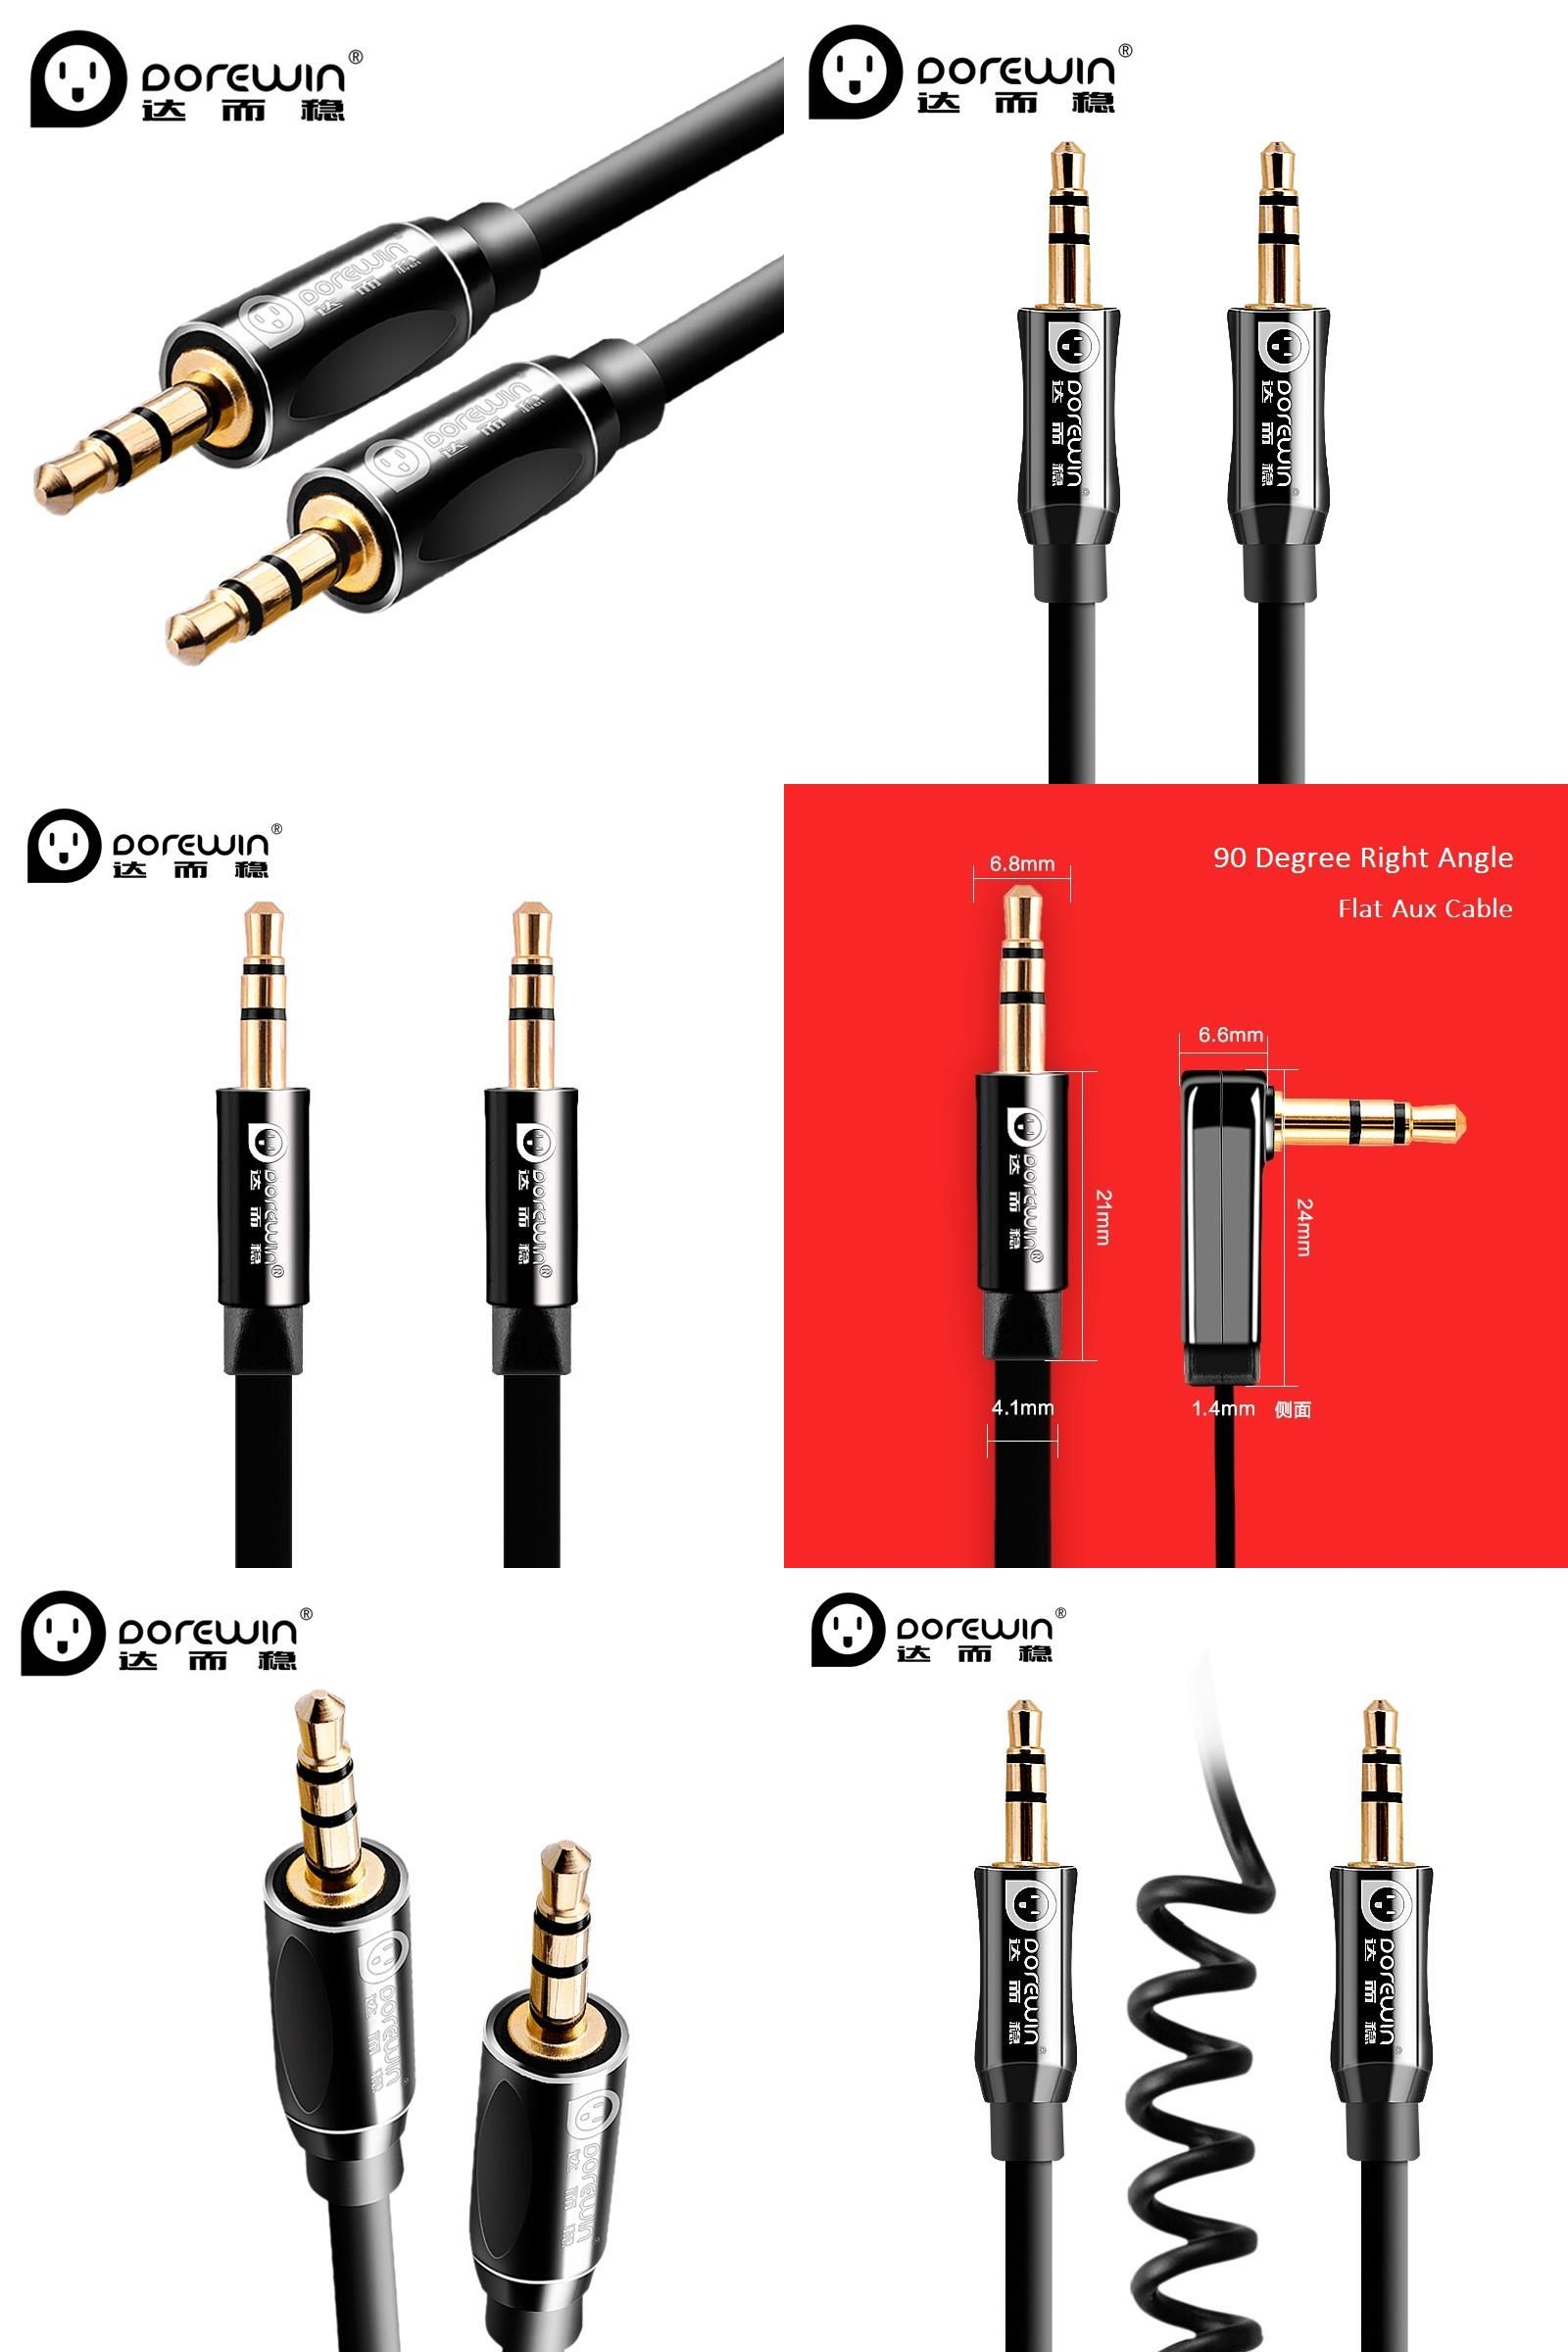 Visit To Buy Dorewin 3 5mm Jack Audio Cable Male To Male 90 Degree Right Angle Flat Aux Extension Cable For Iphone Car Headpho Jack Audio 90 Degrees Male To Male